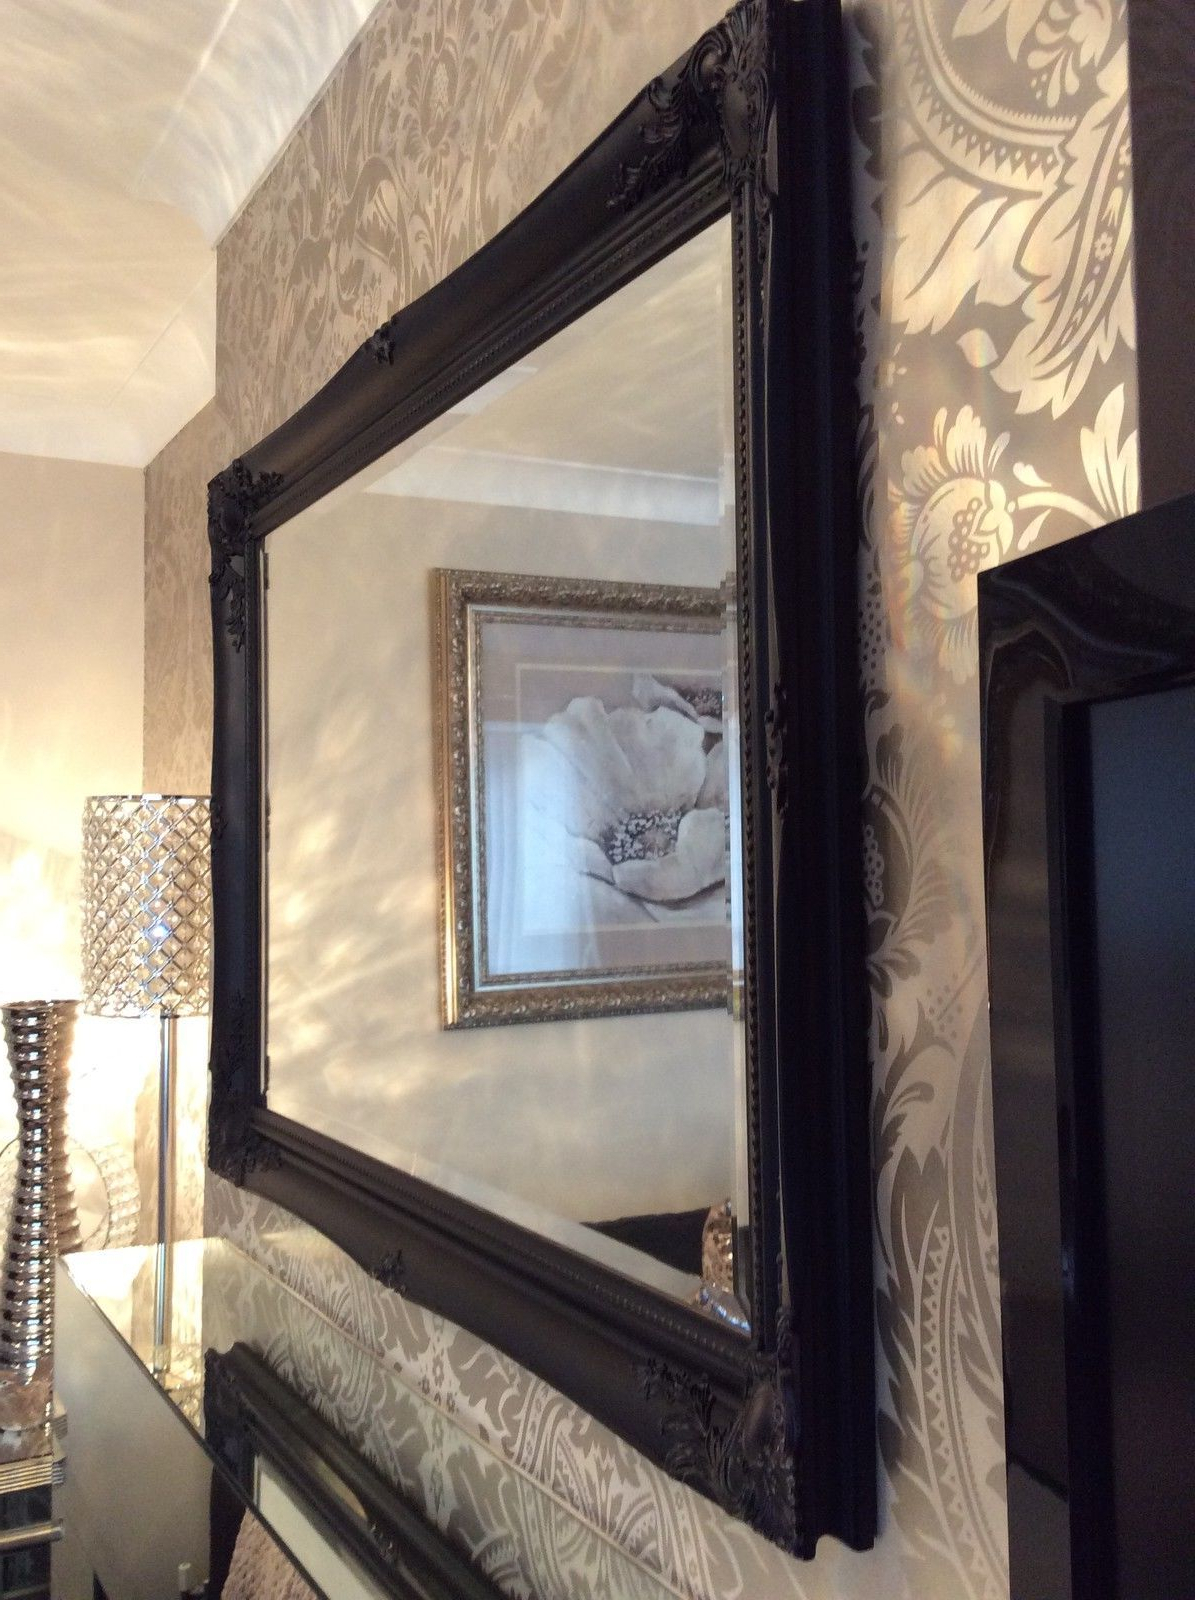 Famous Black Framed Wall Mirrors Intended For Large Black Stunning Decorative Swept Wall Mirror – Bevelled Glass *new* (View 2 of 20)